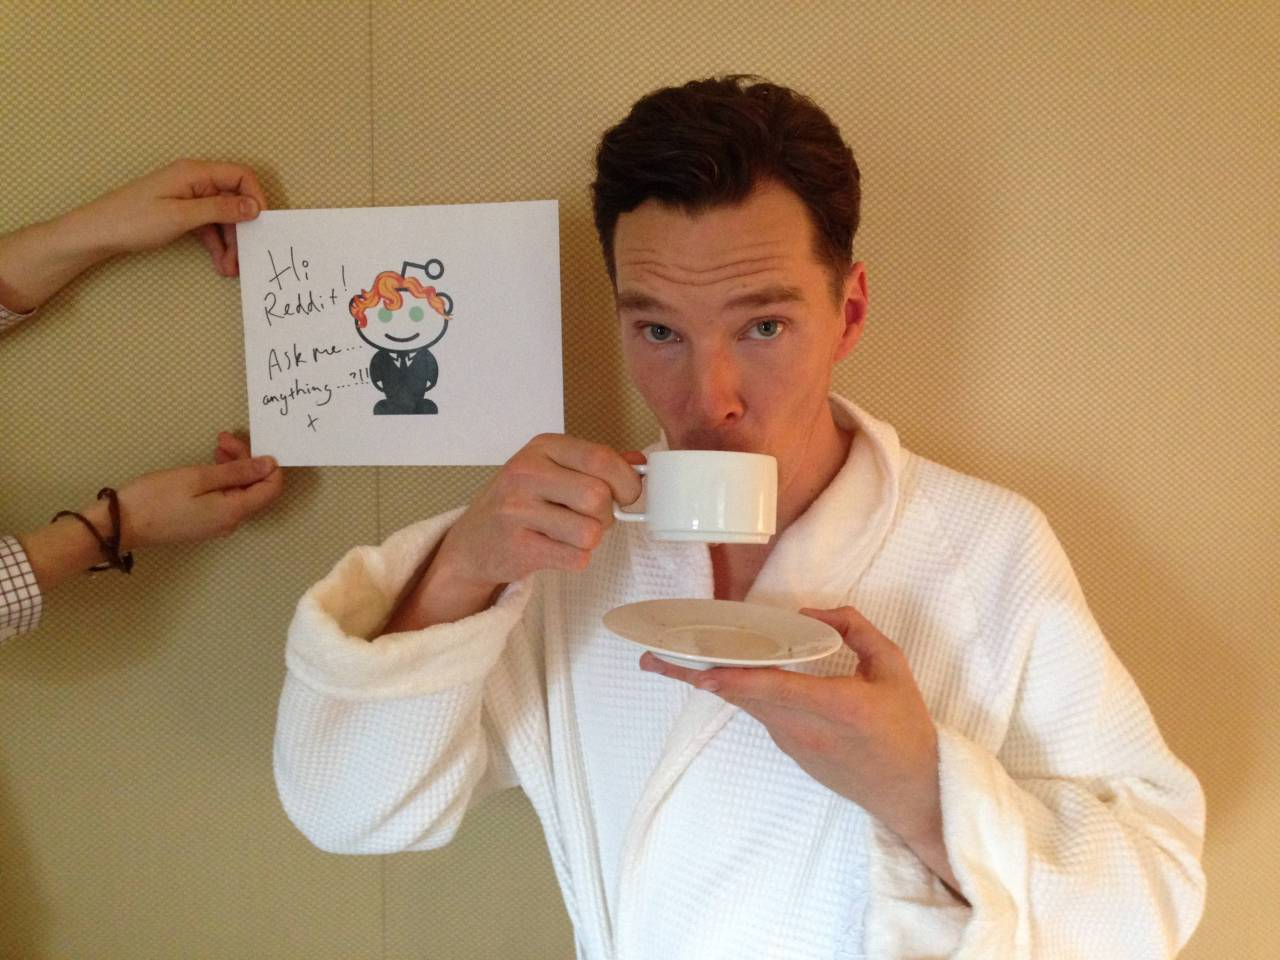 Benedictine Cabbagepatch is doing a Reddit AMA (Ask Me Anything) October 11th Tumblr_muiqldosqQ1rtmageo1_1280